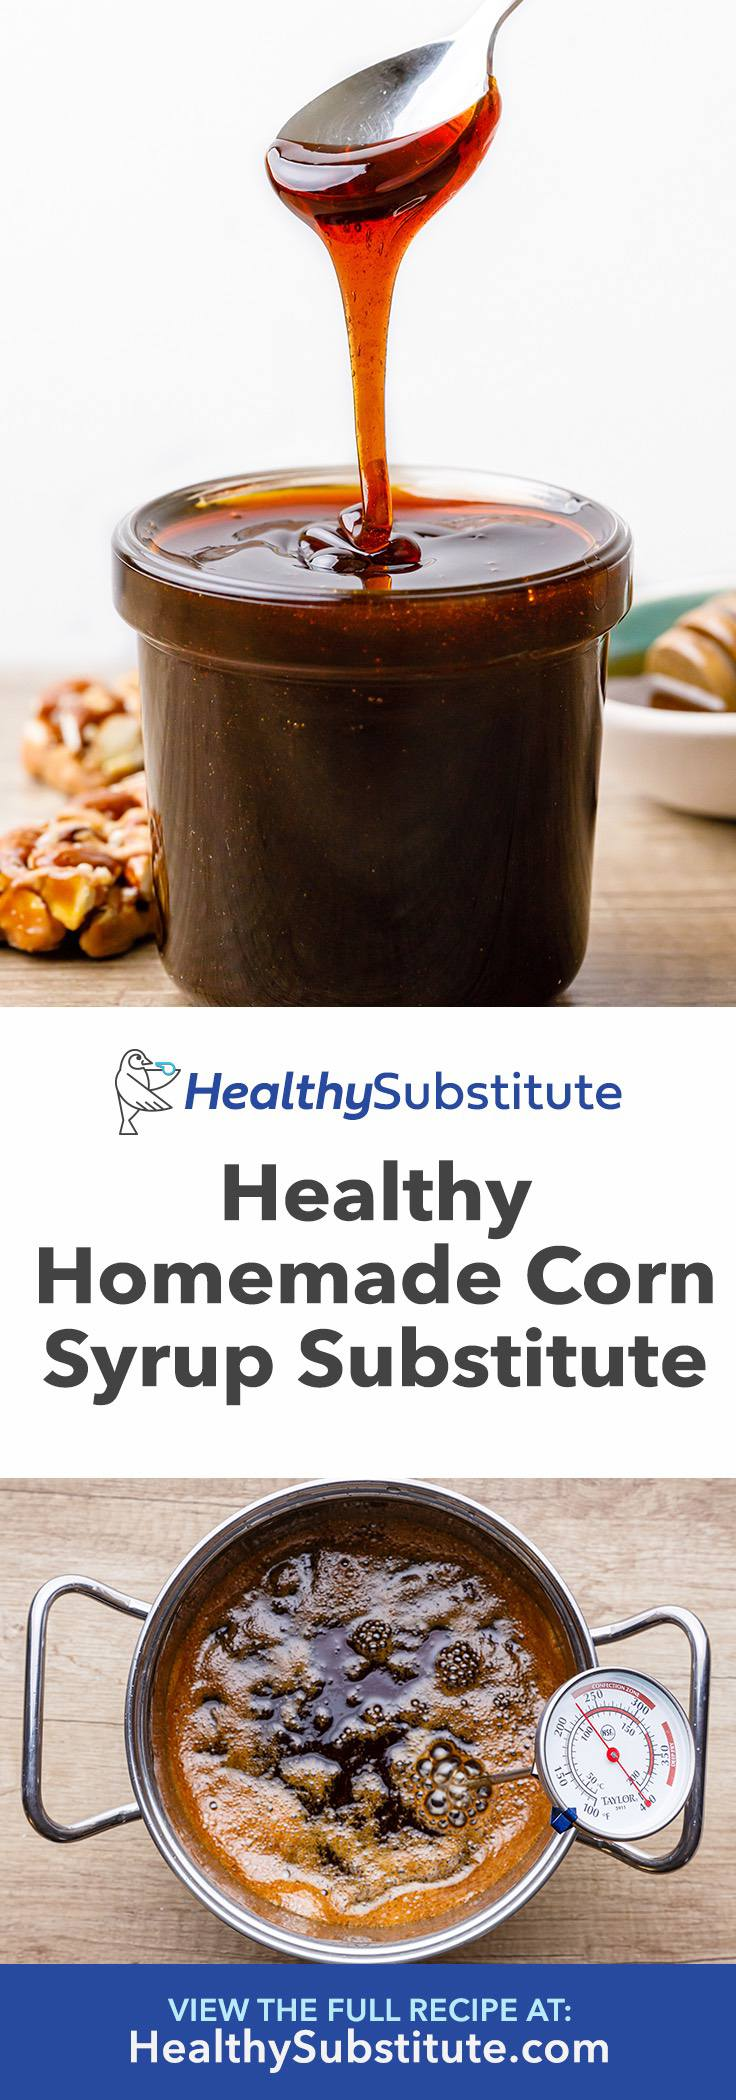 Healthy Homemade Corn Syrup Substitute